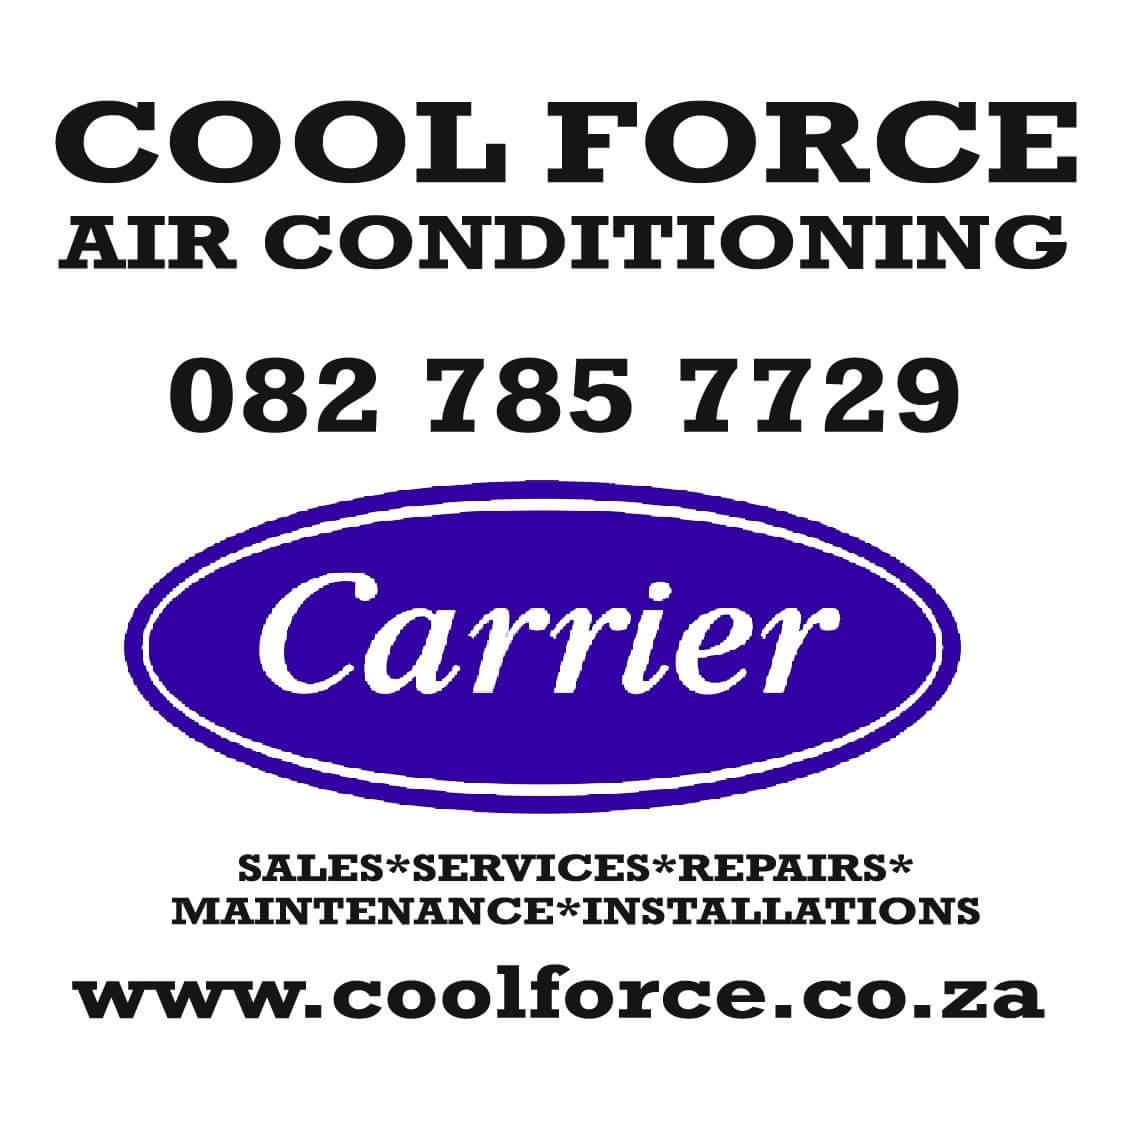 Air Conditioning in Pietermaritzburg